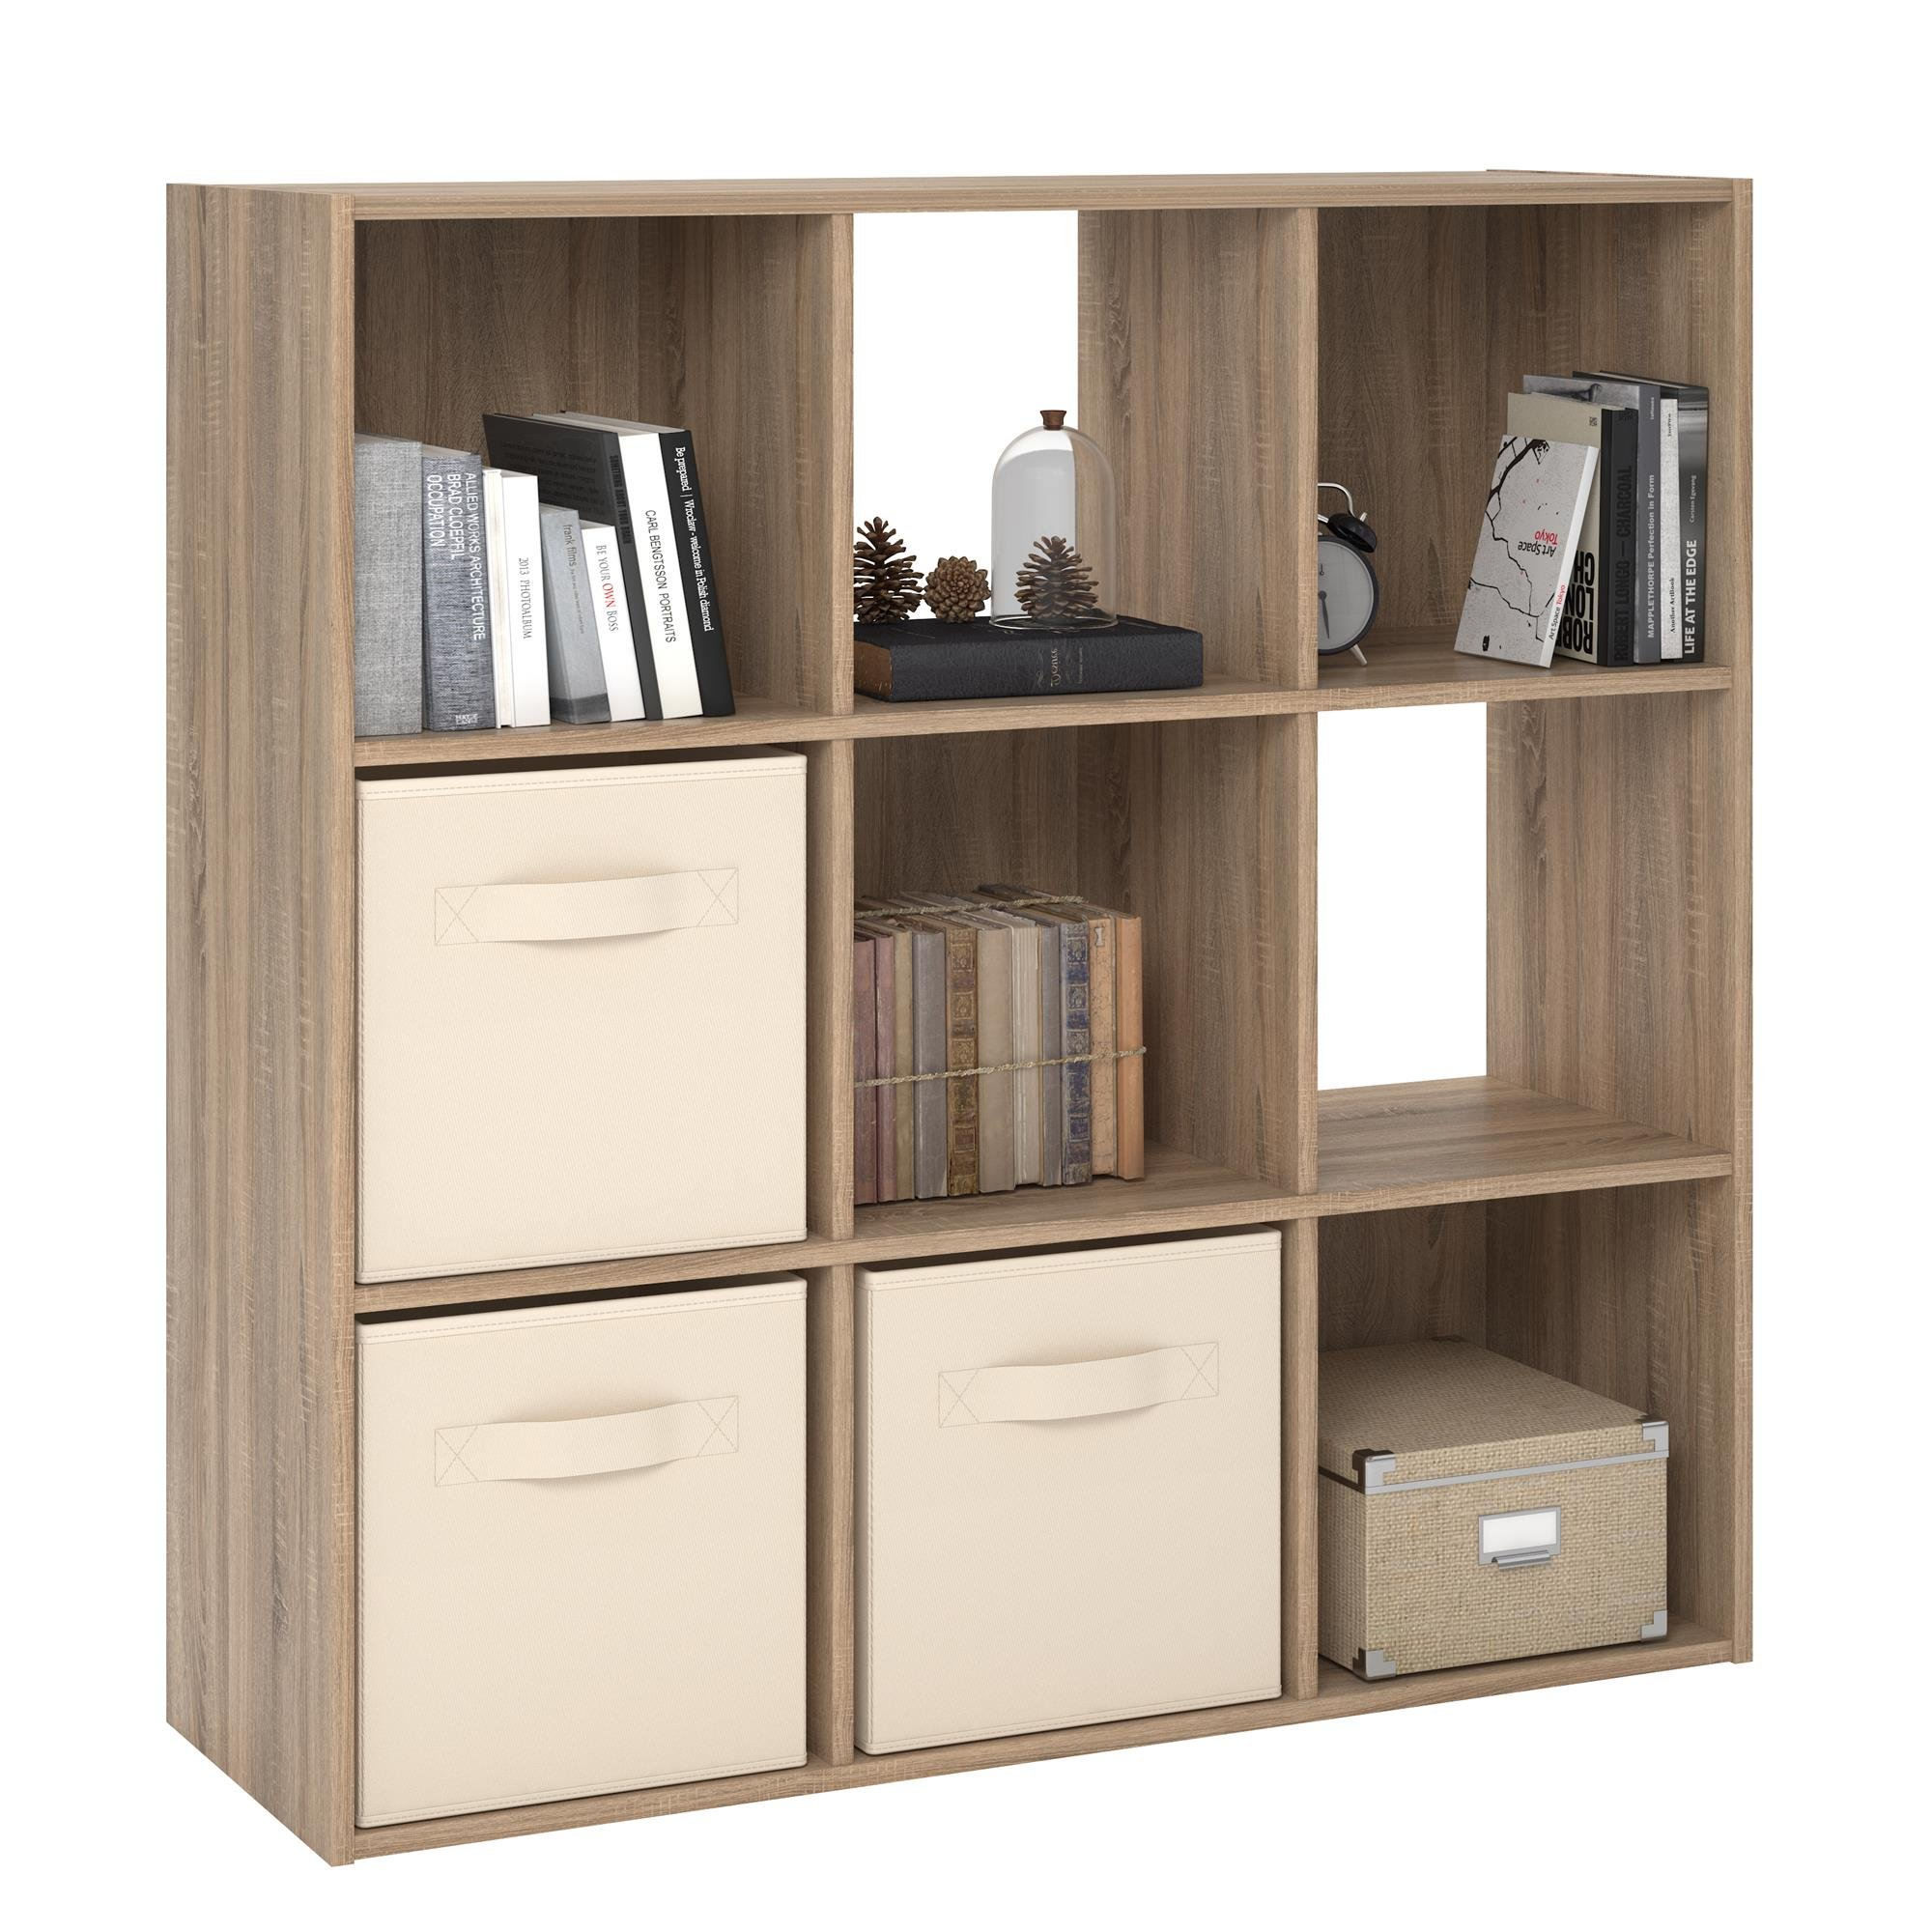 RealRooms Tally 9 Cube Bookcase, Weathered Oak by REALROOMS (Image #3)